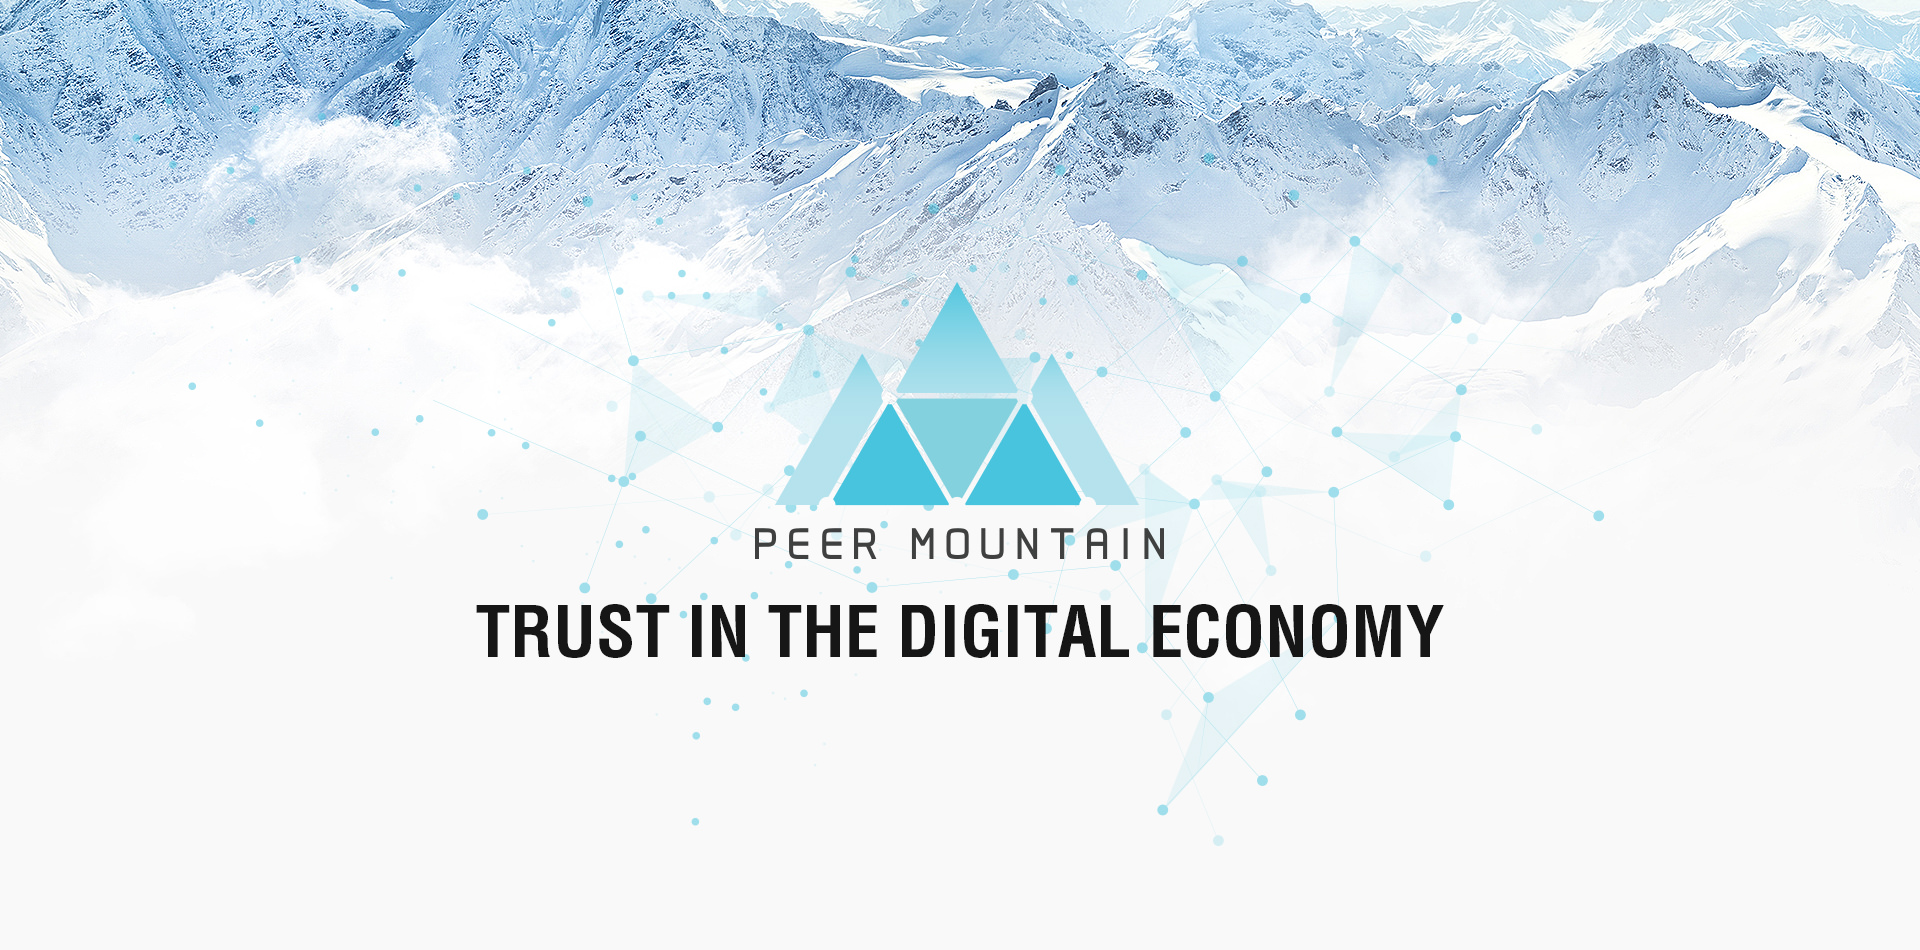 Peer Mountain's Jed Grant discusses the project with Smart ICO Investor